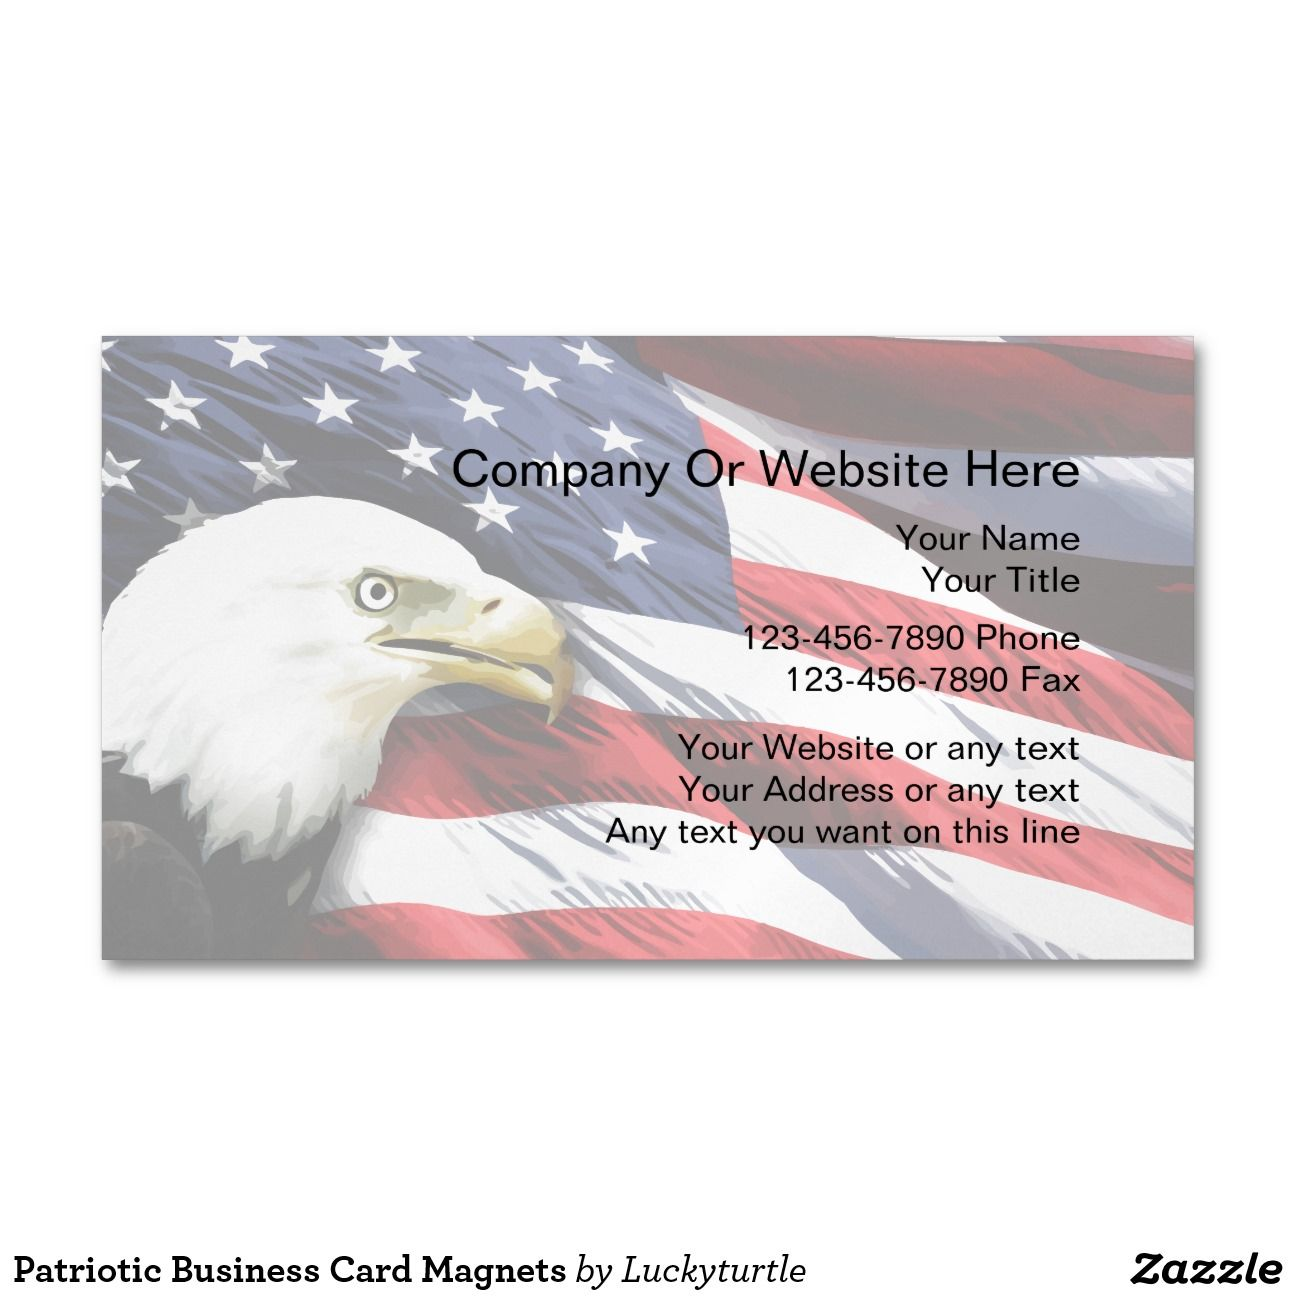 Patriotic Business Card Magnets | Business cards, Magnetic ...